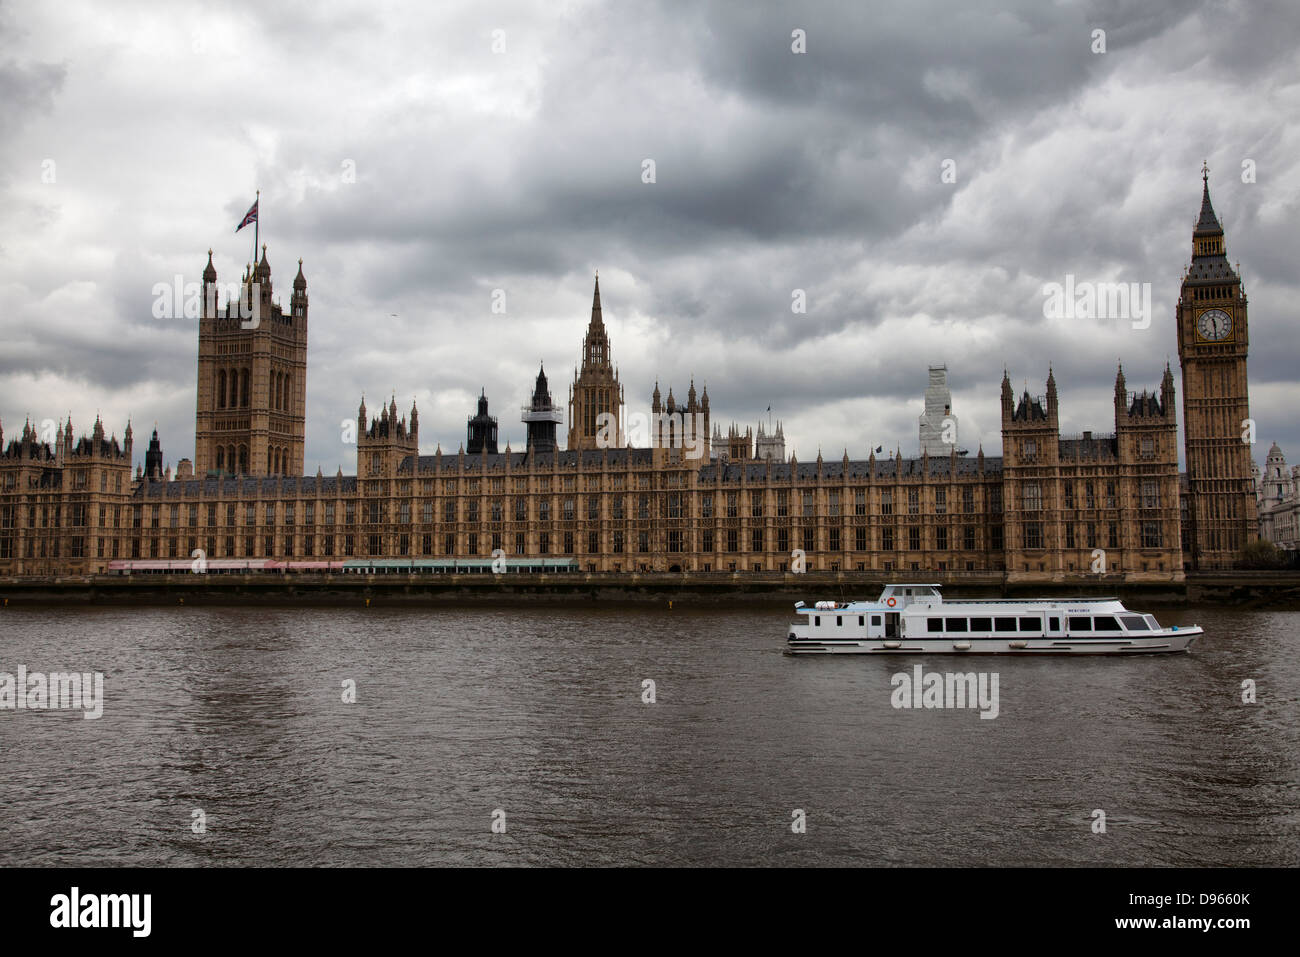 Houses of Parliament River Thames Cruise - London UK - Stock Image